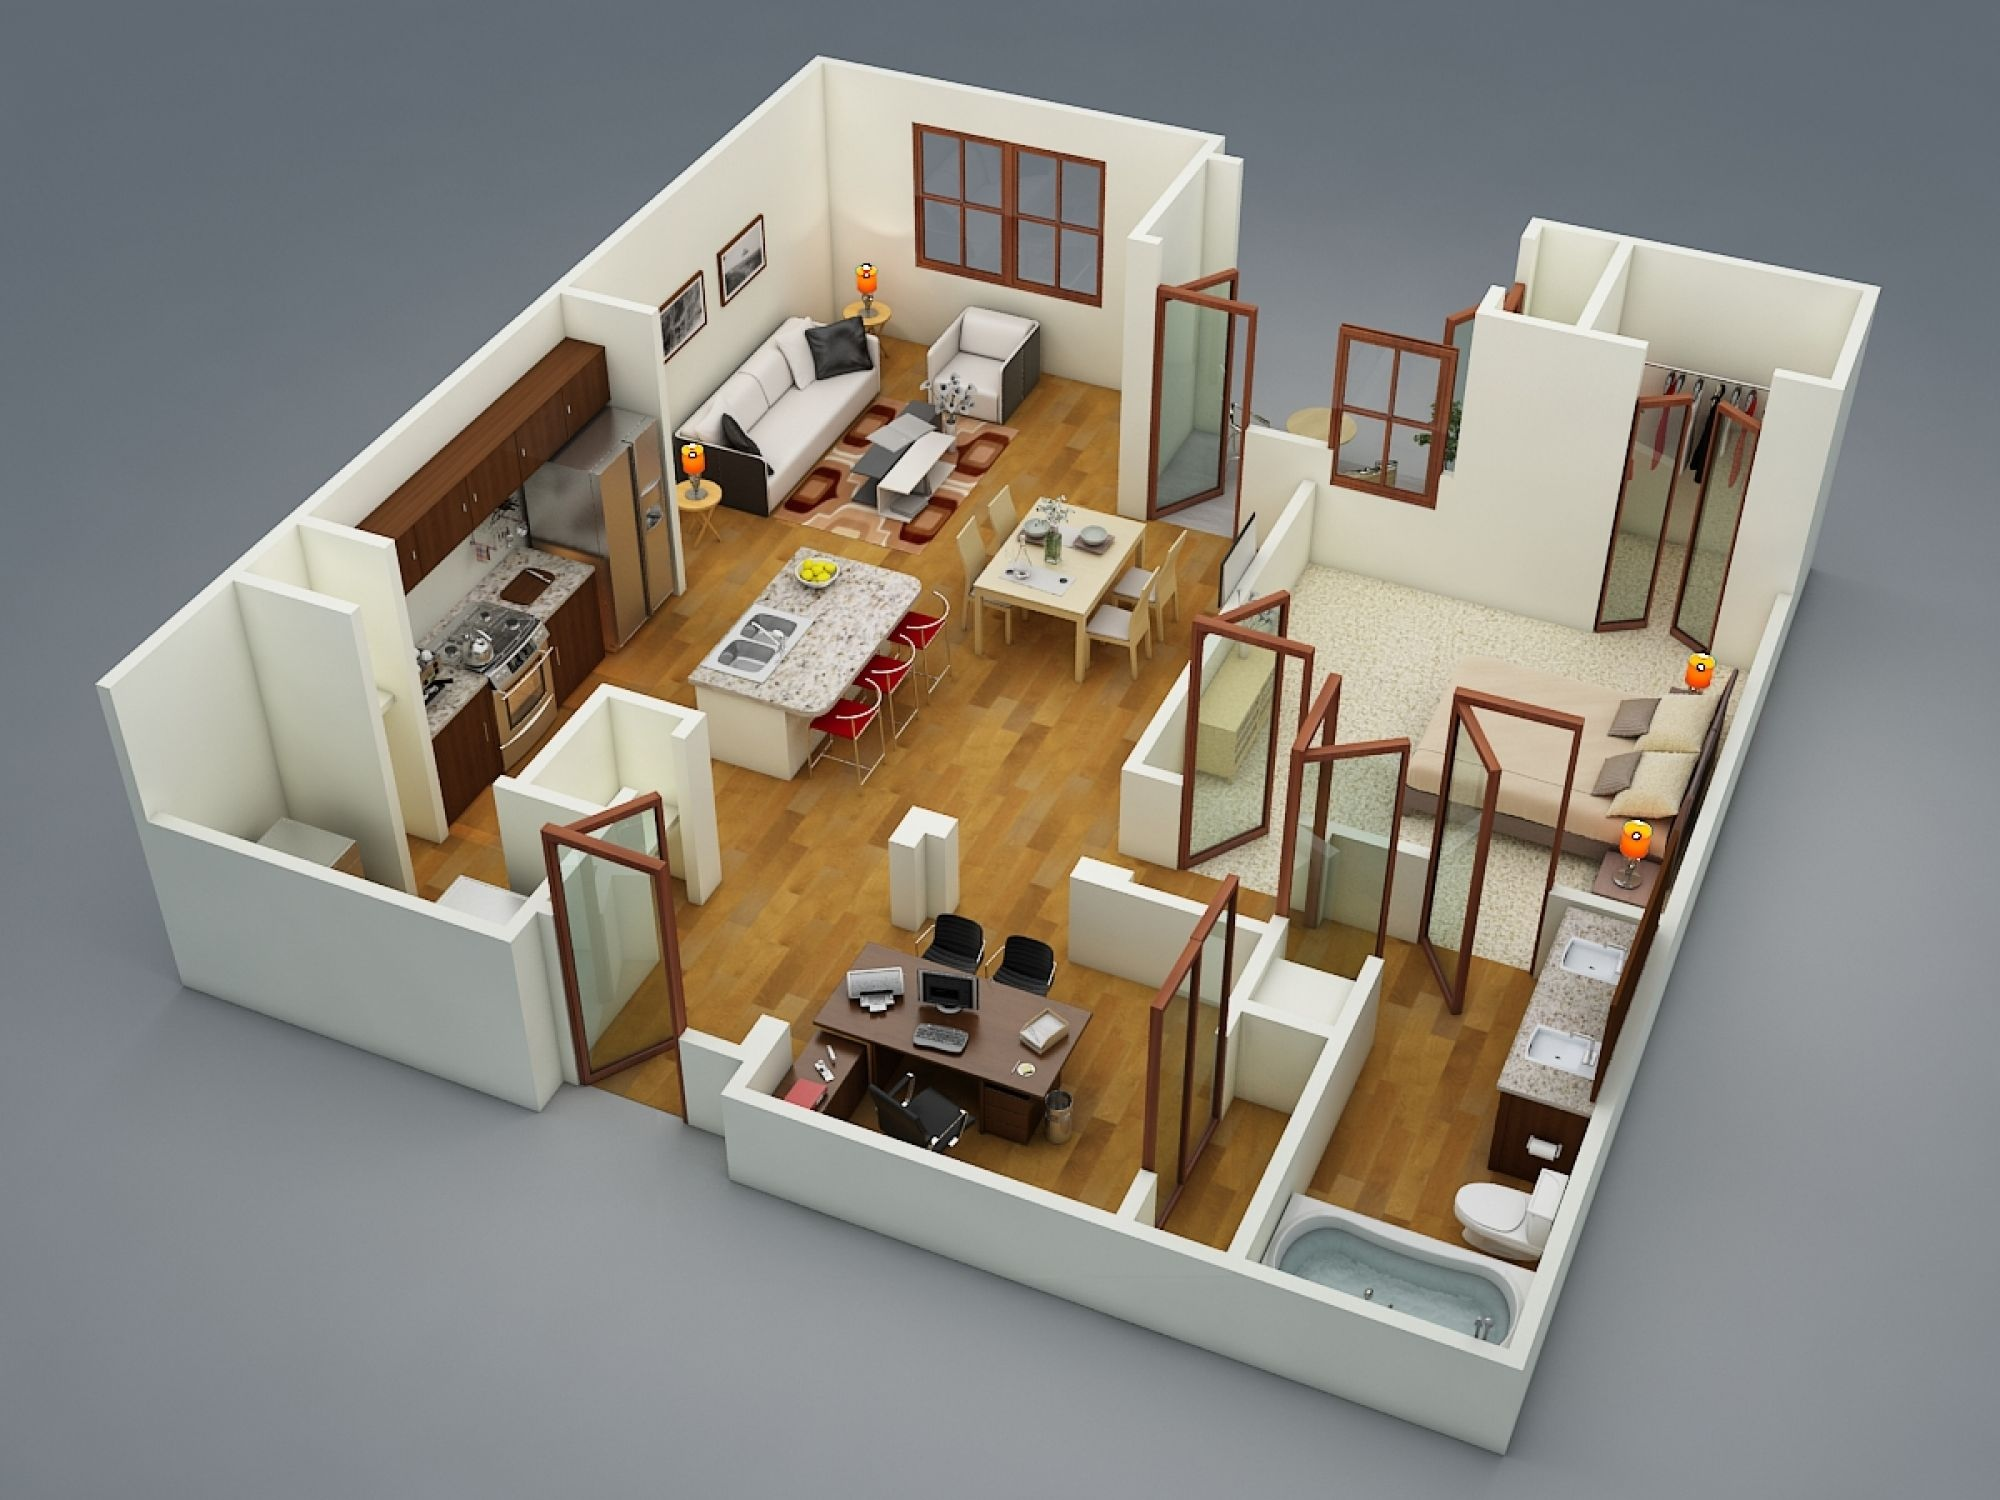 1 bedroom apartment house plans for 6x6 room design